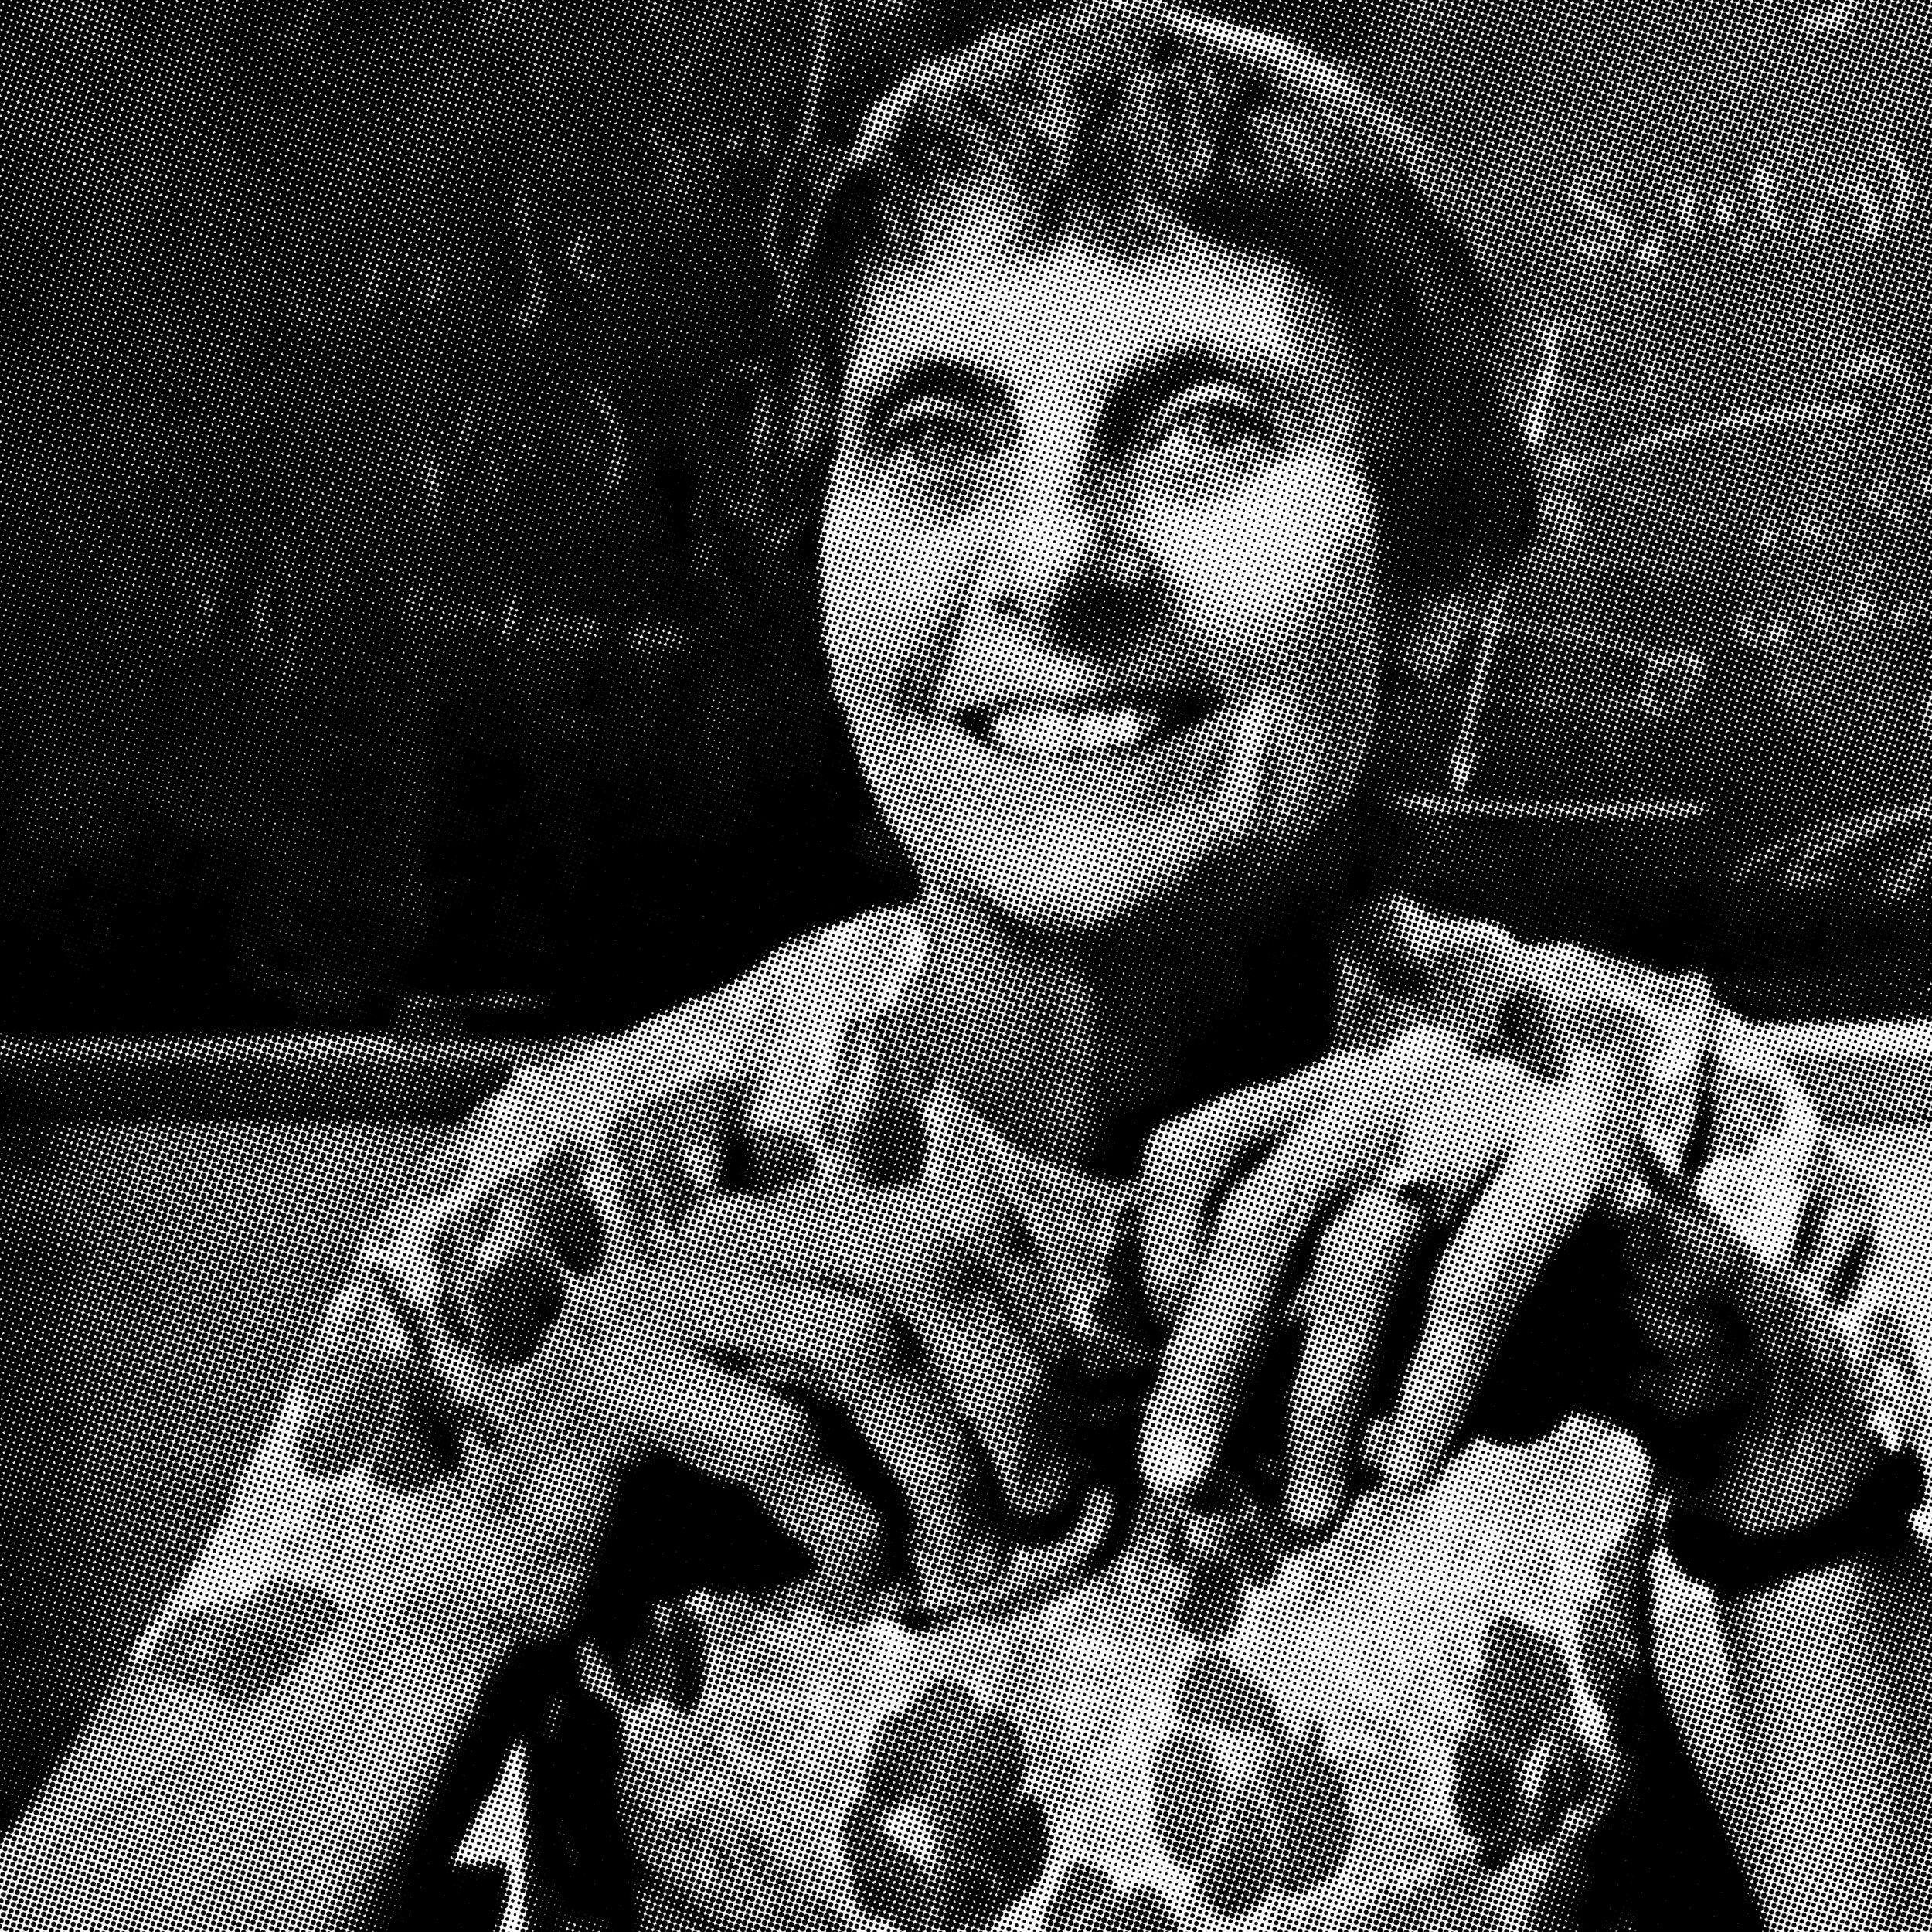 Cécile DeWitt-Morette    Reinvigorated European Physics